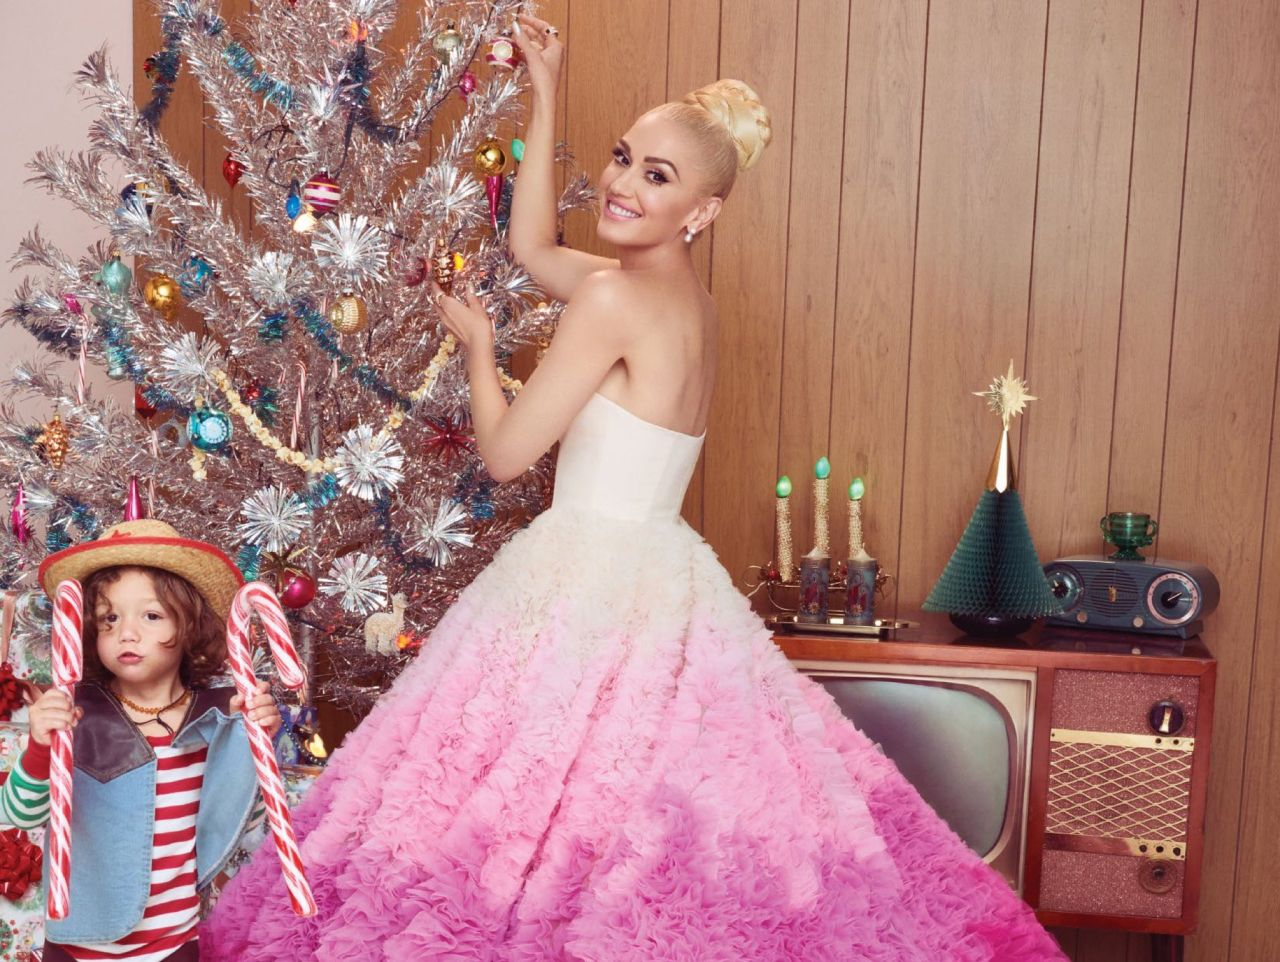 http://celebmafia.com/wp-content/uploads/2017/12/gwen-stefani-you-make-it-feel-like-christmas-photoshoot-3.jpg